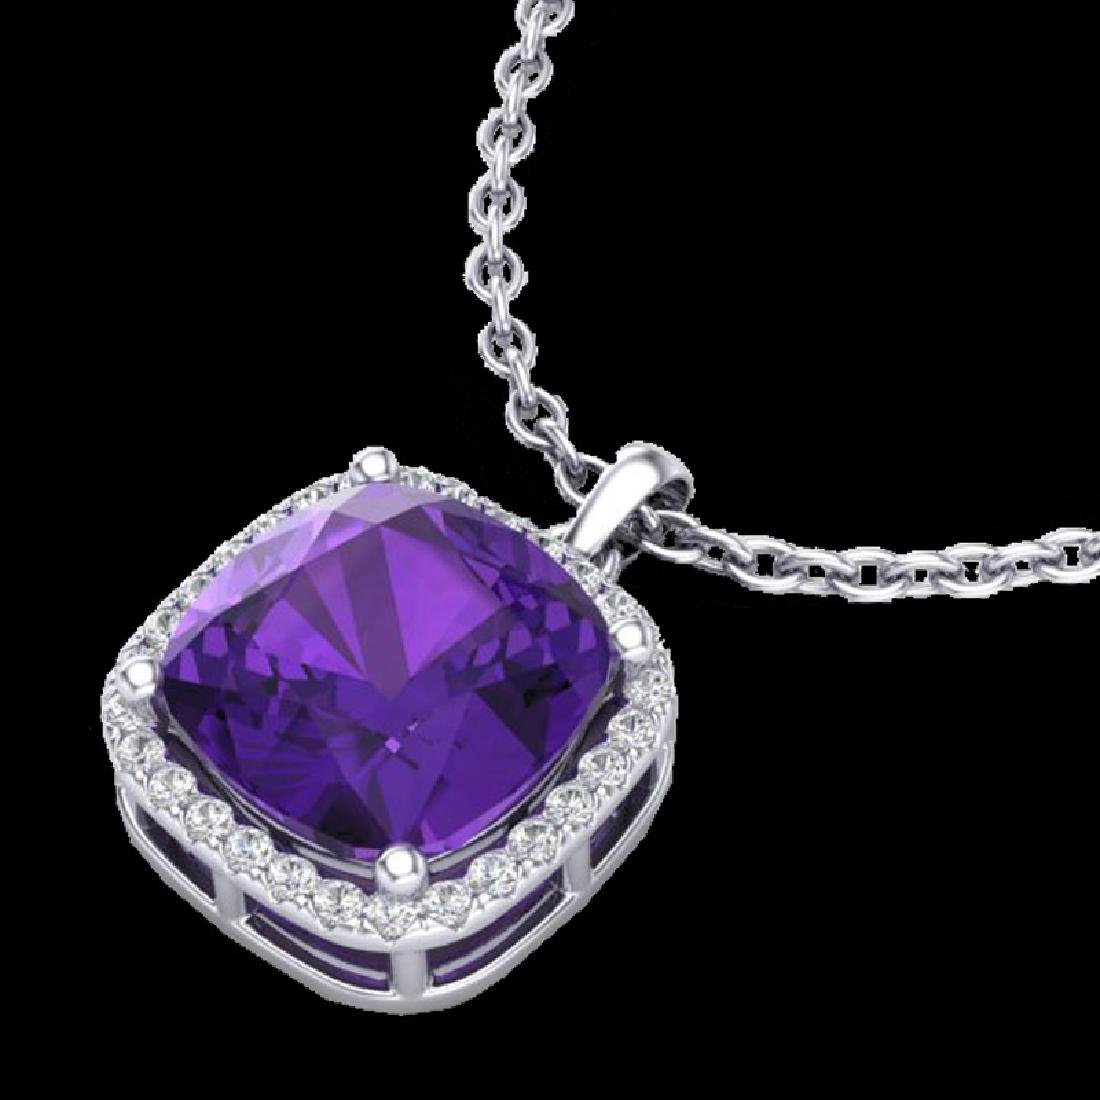 6 CTW Amethyst & Micro Pave Halo VS/SI Diamond Necklace